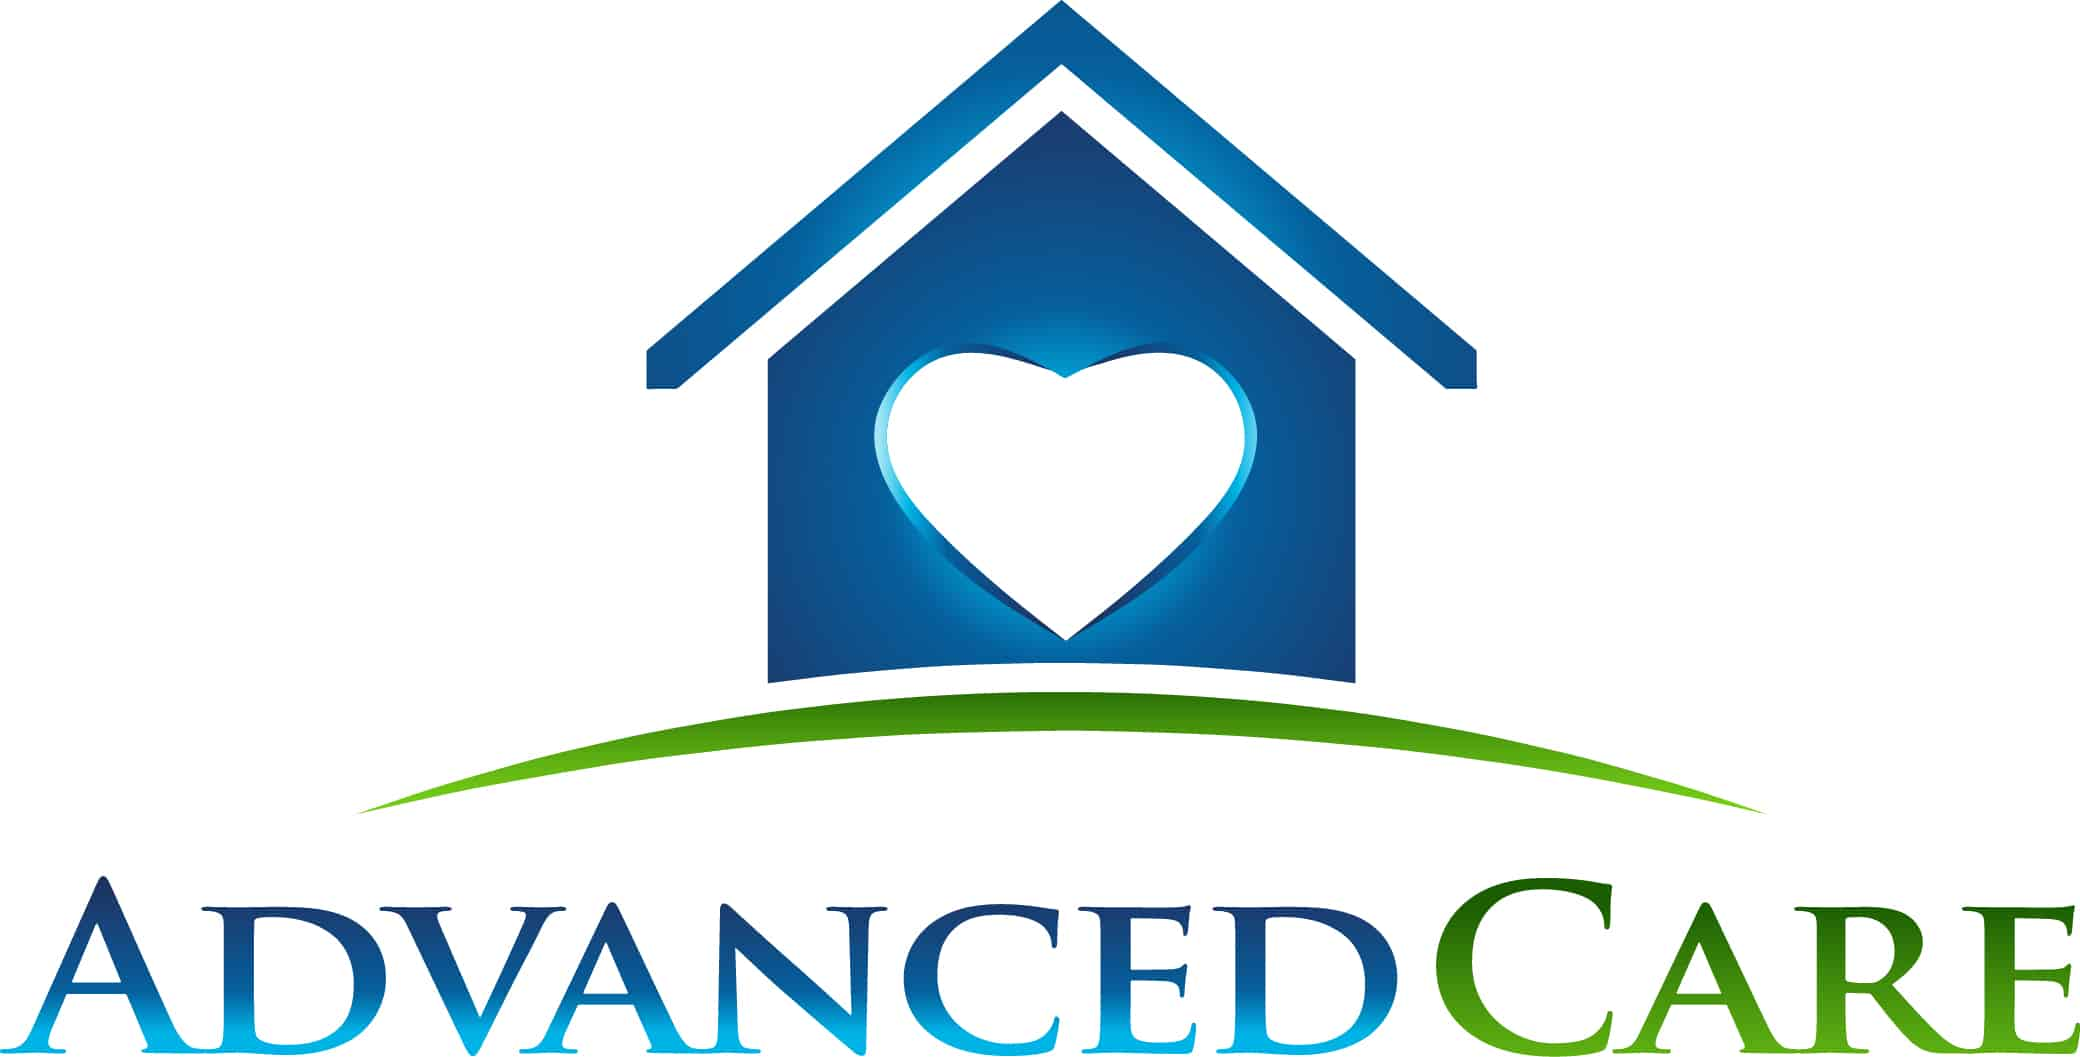 Advance_care logo design